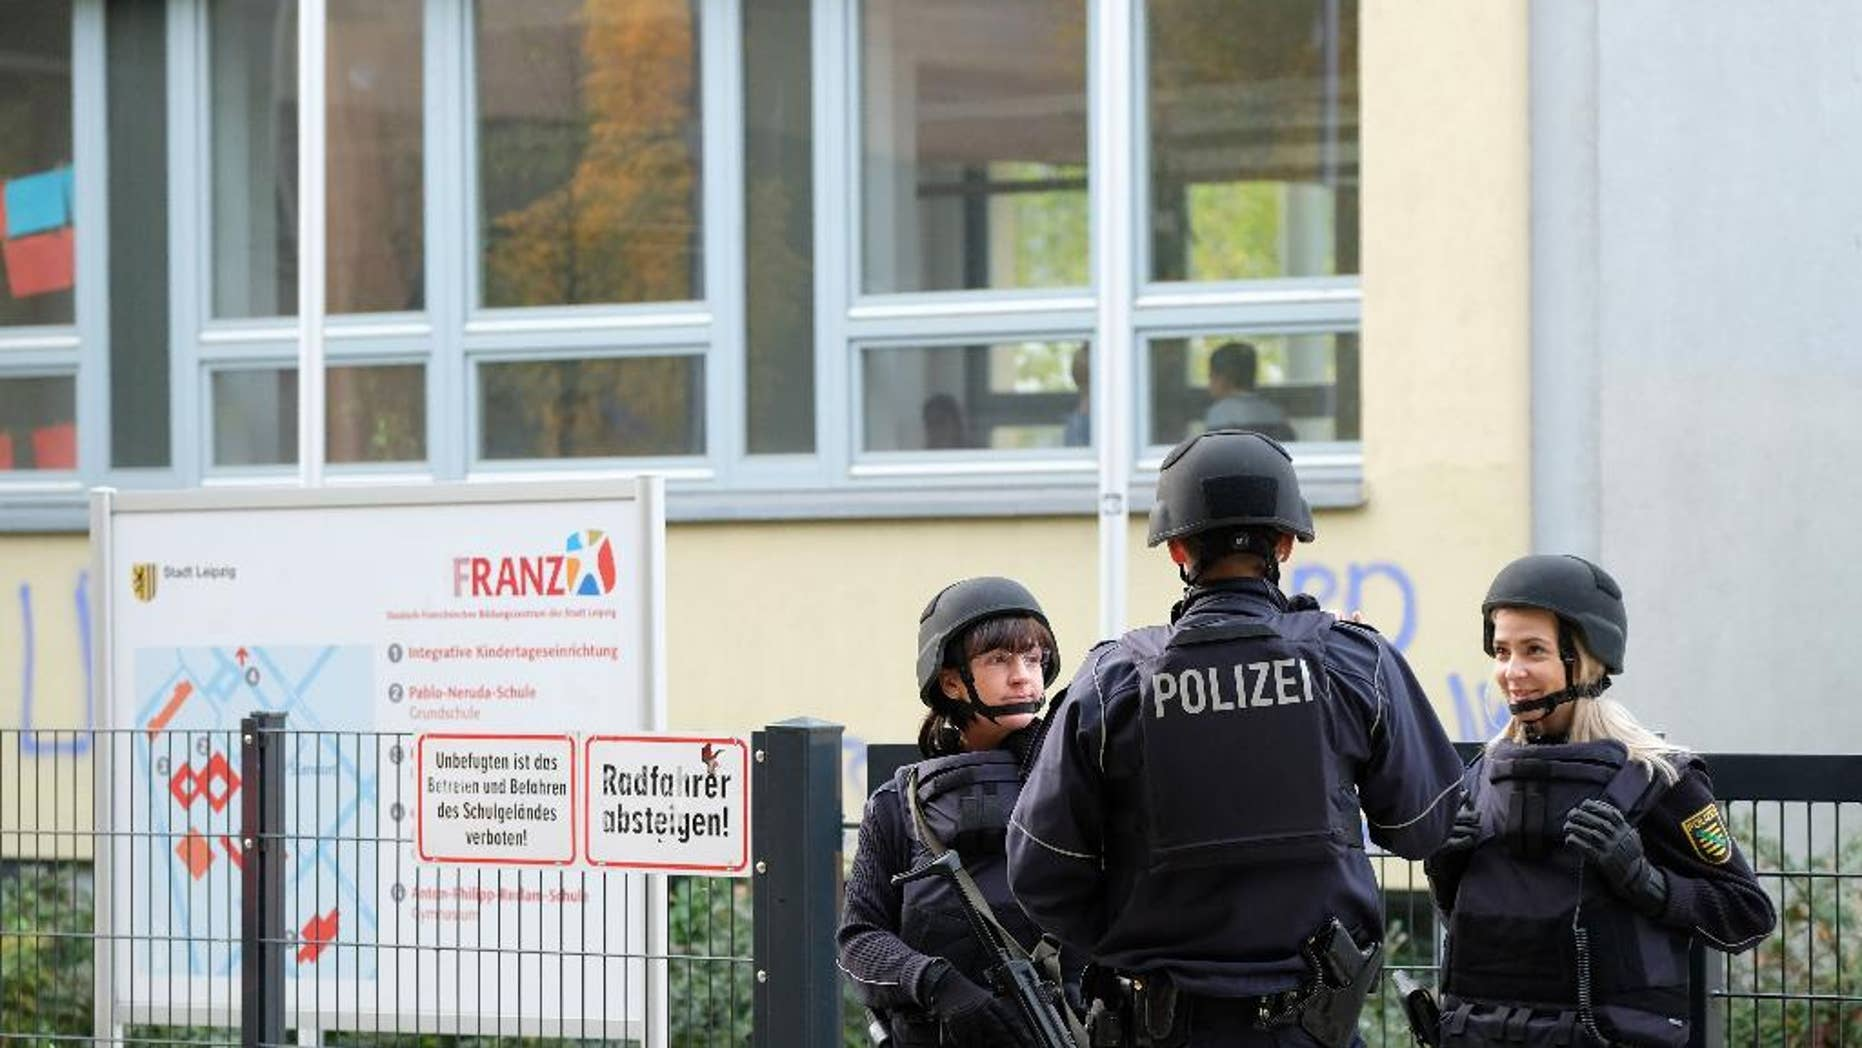 Police stand in front of the Reclam High School in Leipzig, Germany, Monday Oct. 17, 2016.  Police say that schools in at least two German cities have received threats and authorities are working to figure out who and what is behind them. Police in Leipzig said at least seven schools in Leipzig received threats by emails on Monday, though it wasn't clear exactly what was threatened, news agency dpa reported. Officers were sent to the schools, and students and teachers had to remain in the buildings.  ( Sebastian Willnow/dpa via AP)